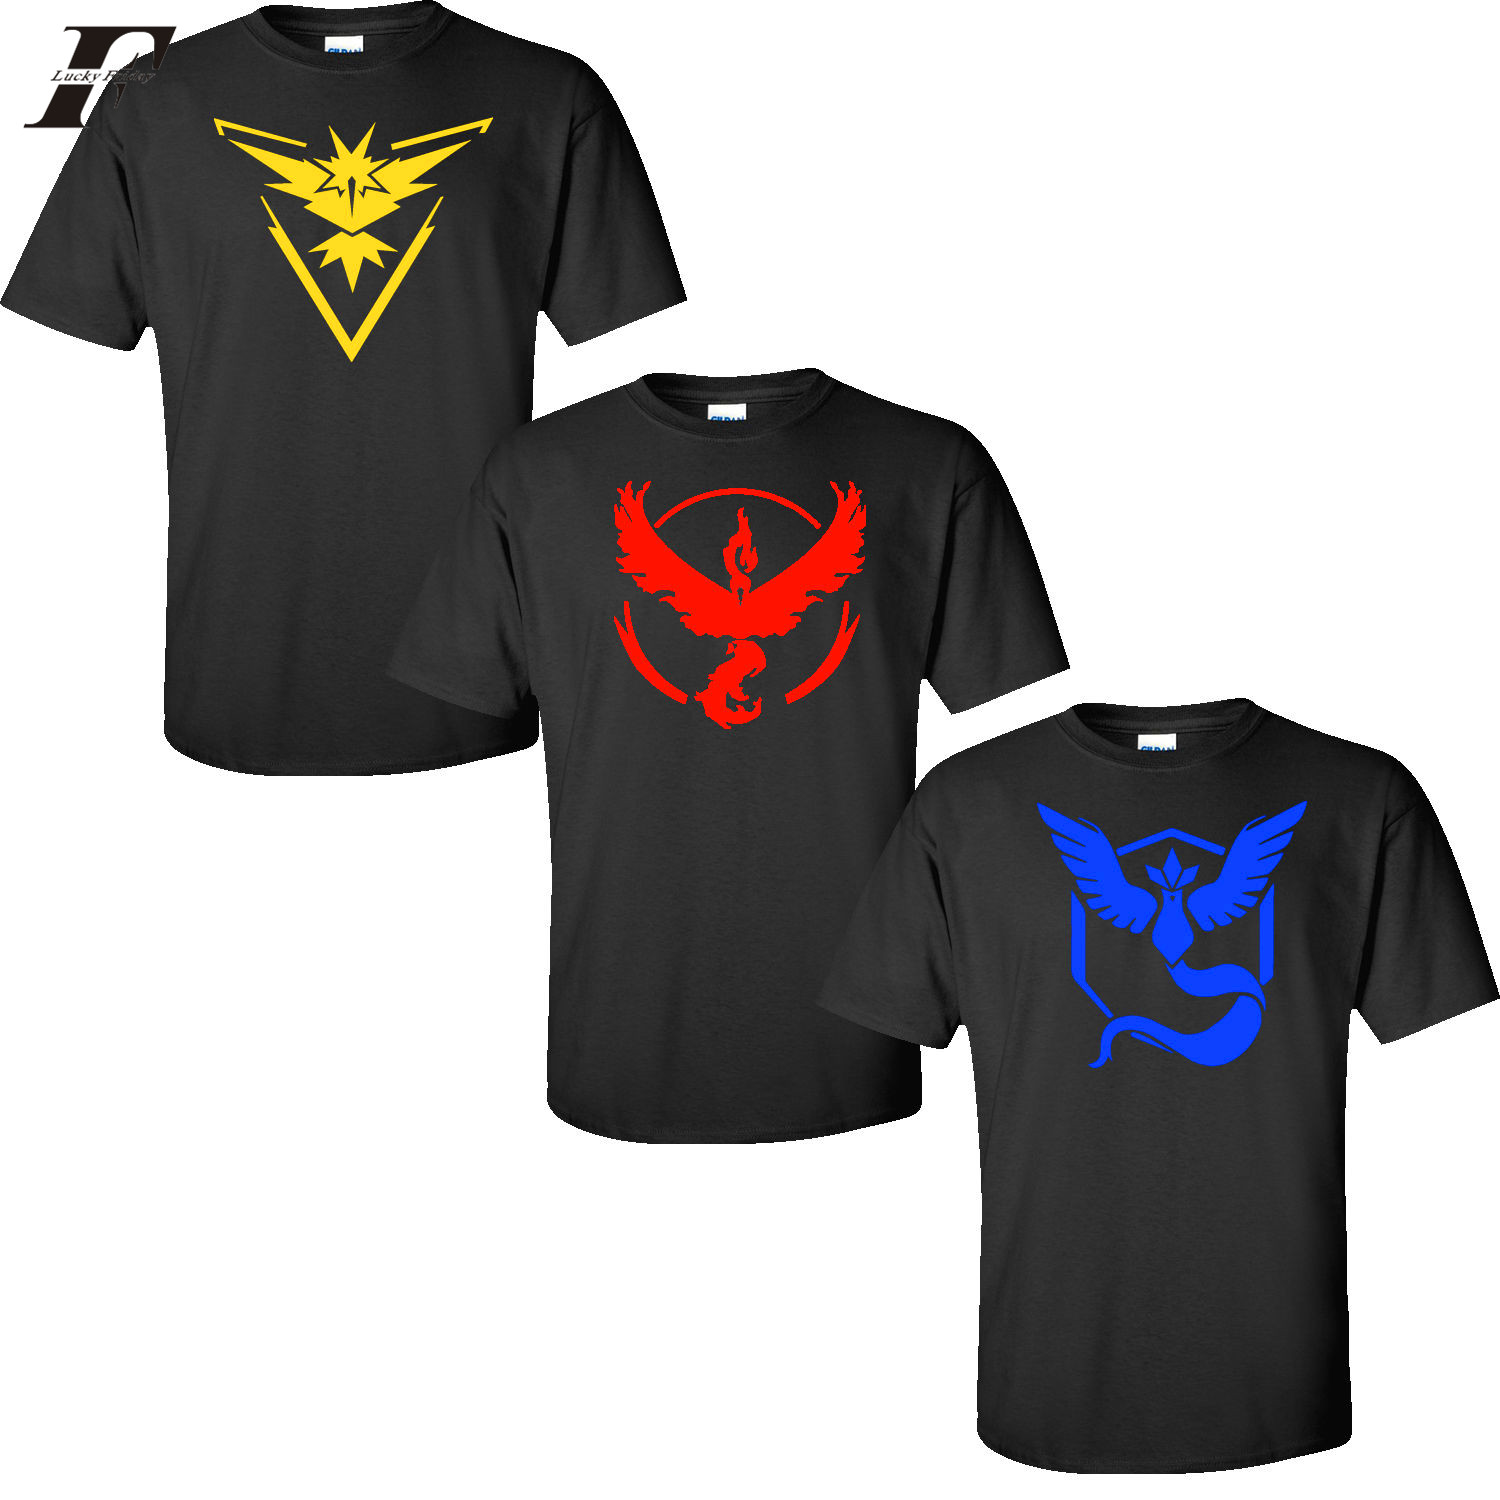 LUCKYFRIDAYF Pokemon Go Plus   T  -  shirt   Pokemon Go   Shirt   Team Valor Mystic Instinct   T     Shirt   Pokemon Go   T     Shirt   Pokemon Clothes